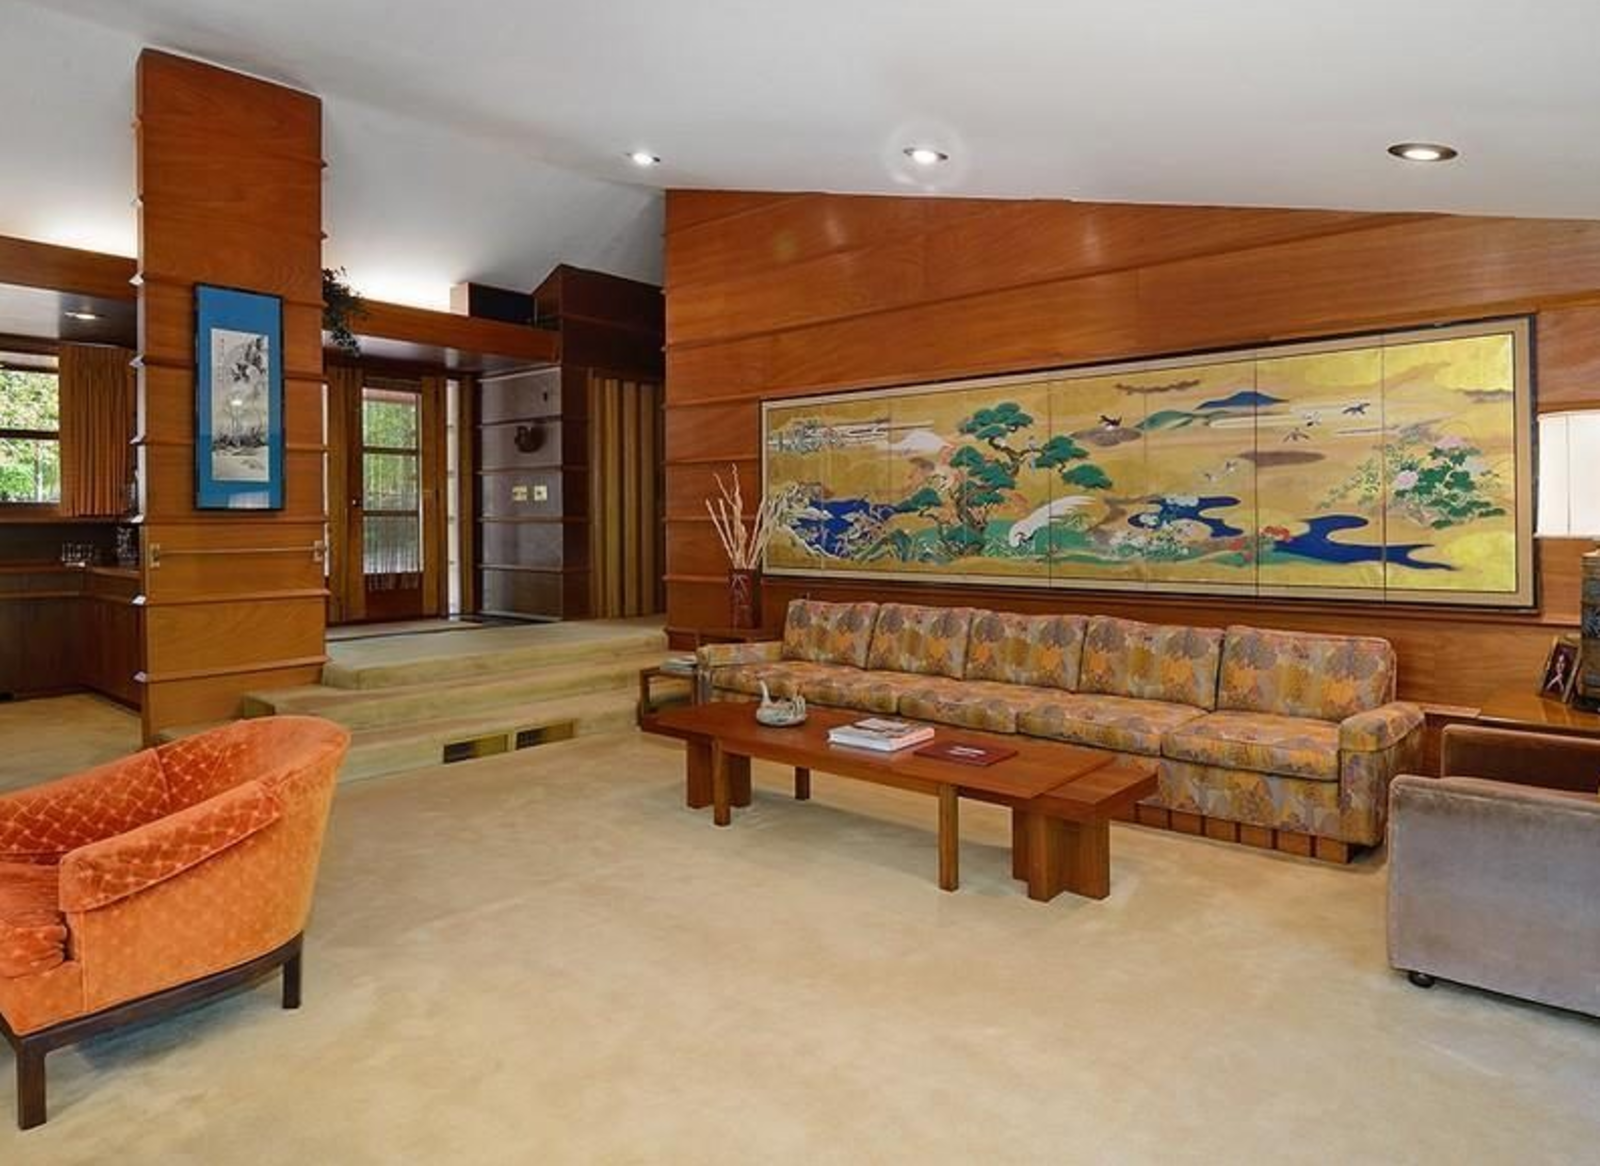 """Living Room, Sofa, Chair, Coffee Tables, Ceiling Lighting, and Recessed Lighting Another house built from Wright's Prefab #1 plan for Marshall Erdman & Associates, the Socrates Zaferiou House in New York state, was sold in 2014.   The Prefab #1 layouts, which ranged in size from 1,800 to 2,400 square feet, shared a single story, L-shaped plan with a """"pitched-roof bedroom wing joining a flat-roofed living-dining-kitchen area centered on a large masonry fireplace."""" Alongside prefabrication managed by Erdman's company, the architect sourced off-the-rack Andersen windows and Pella doors and used basic materials like plywood and Masonite to cut costs. [Photos via Curbed]  Photo 3 of 6 in A Look at Frank Lloyd Wright's Little-Known Prefabs"""